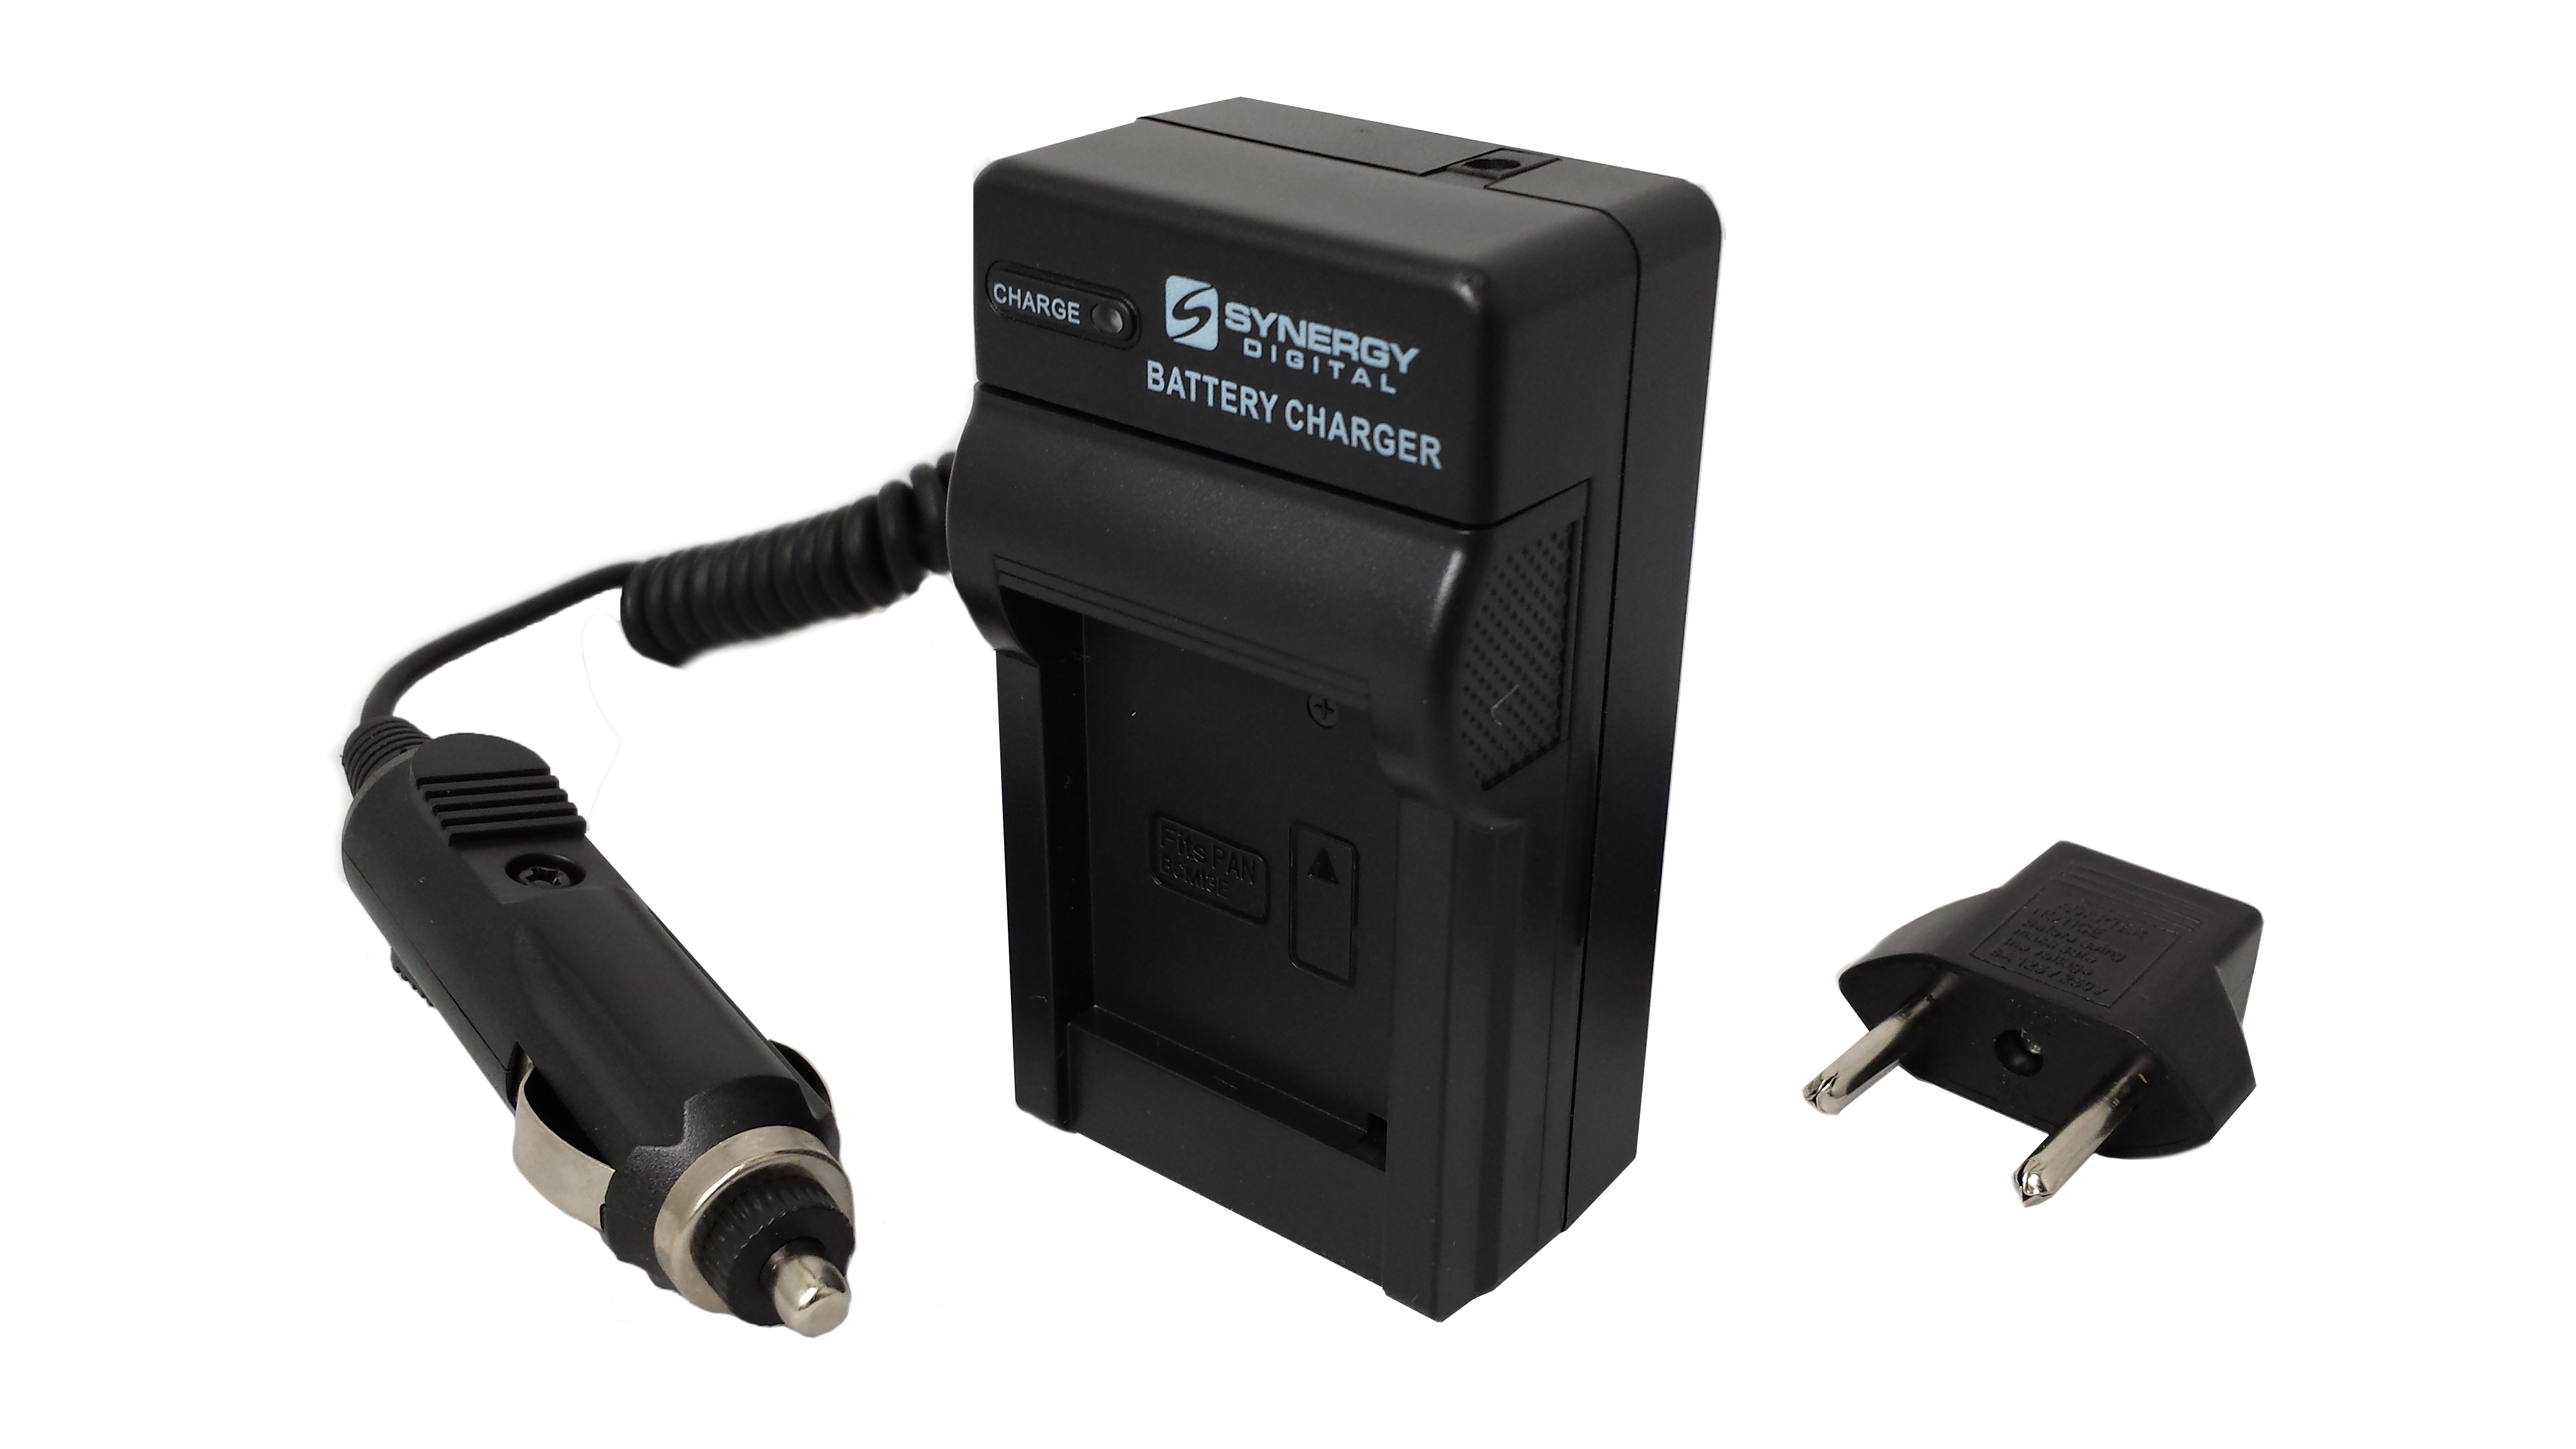 Synergy Digital JVC GR-D850 Camcorder Battery Charger (110/220v with Car & EU adapters) - Replacement Charger for JVC BN-VF808, BN-VF815, BN-VF8 at Sears.com